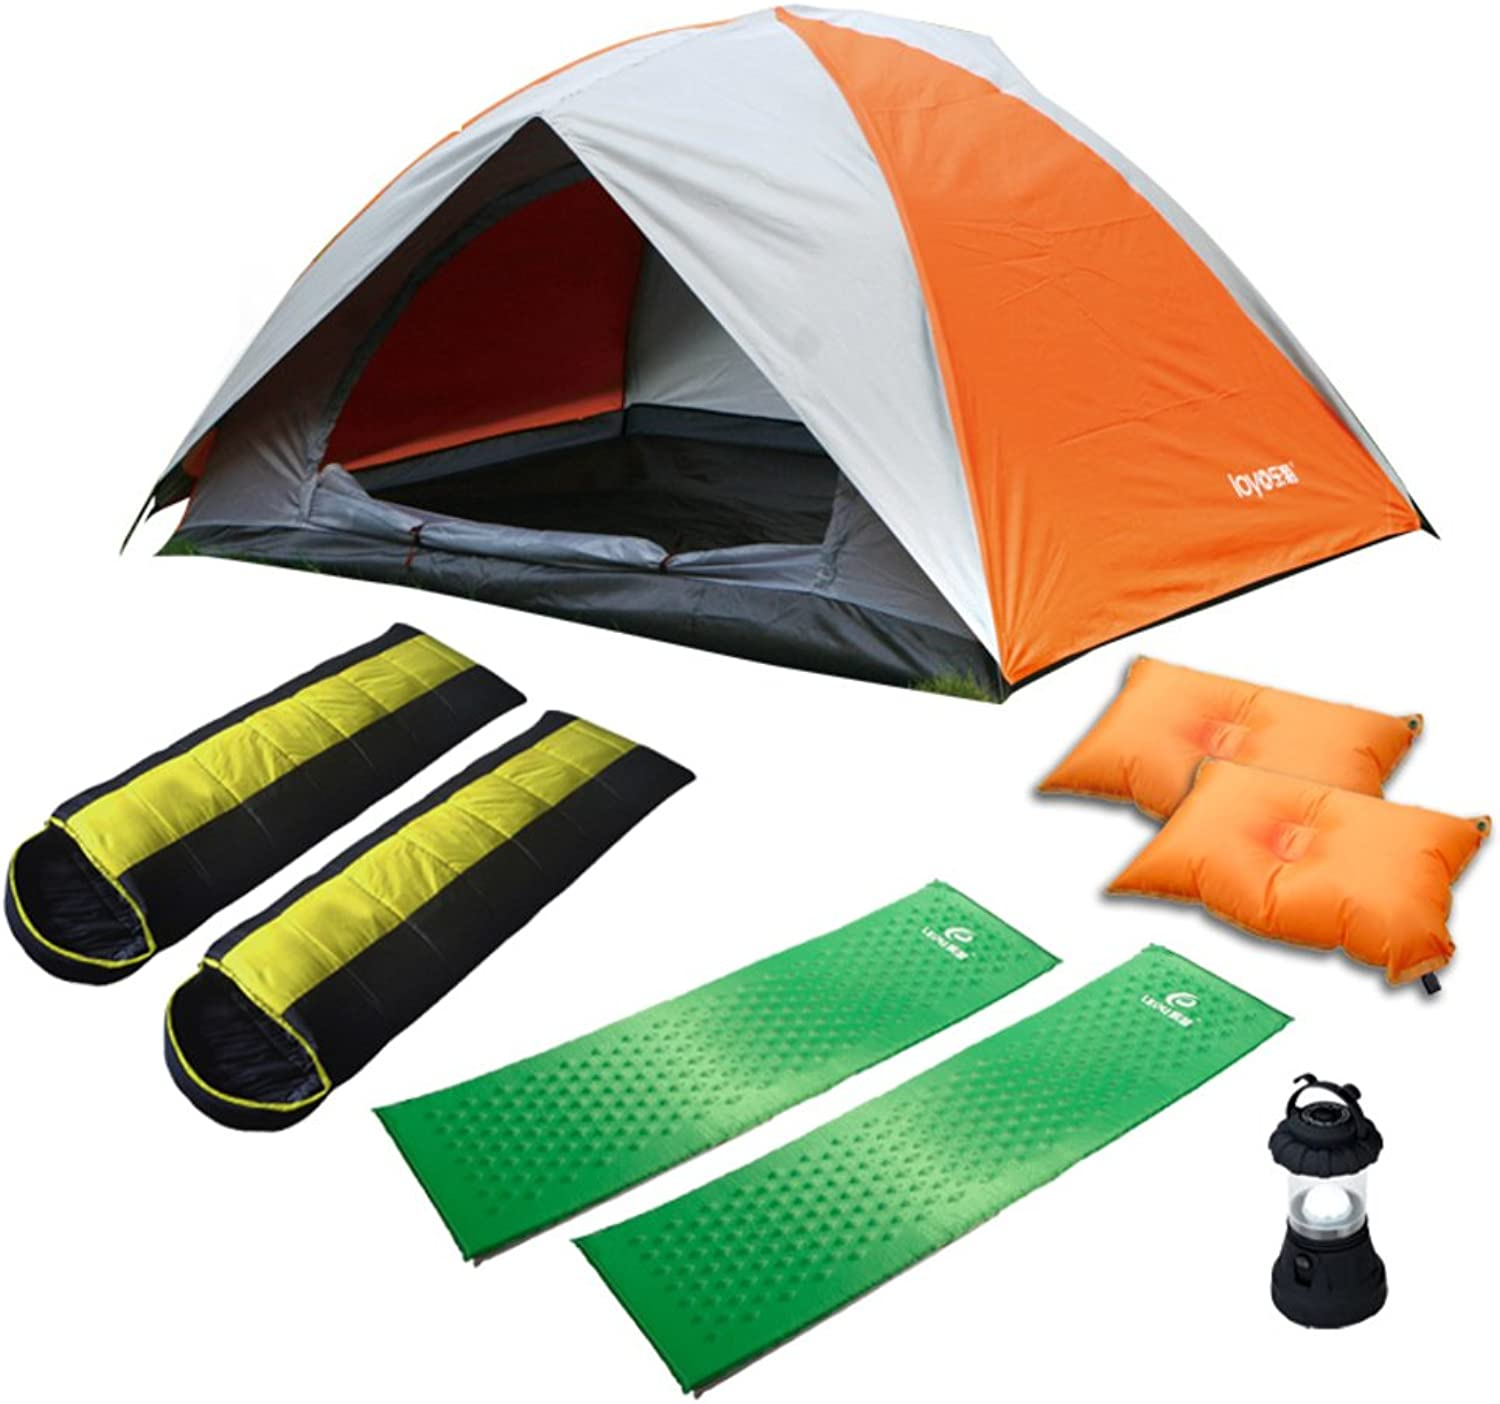 Tent Kit ( double double tent sleeping bag  self inflating mat  pillowfilled  tent lamp)